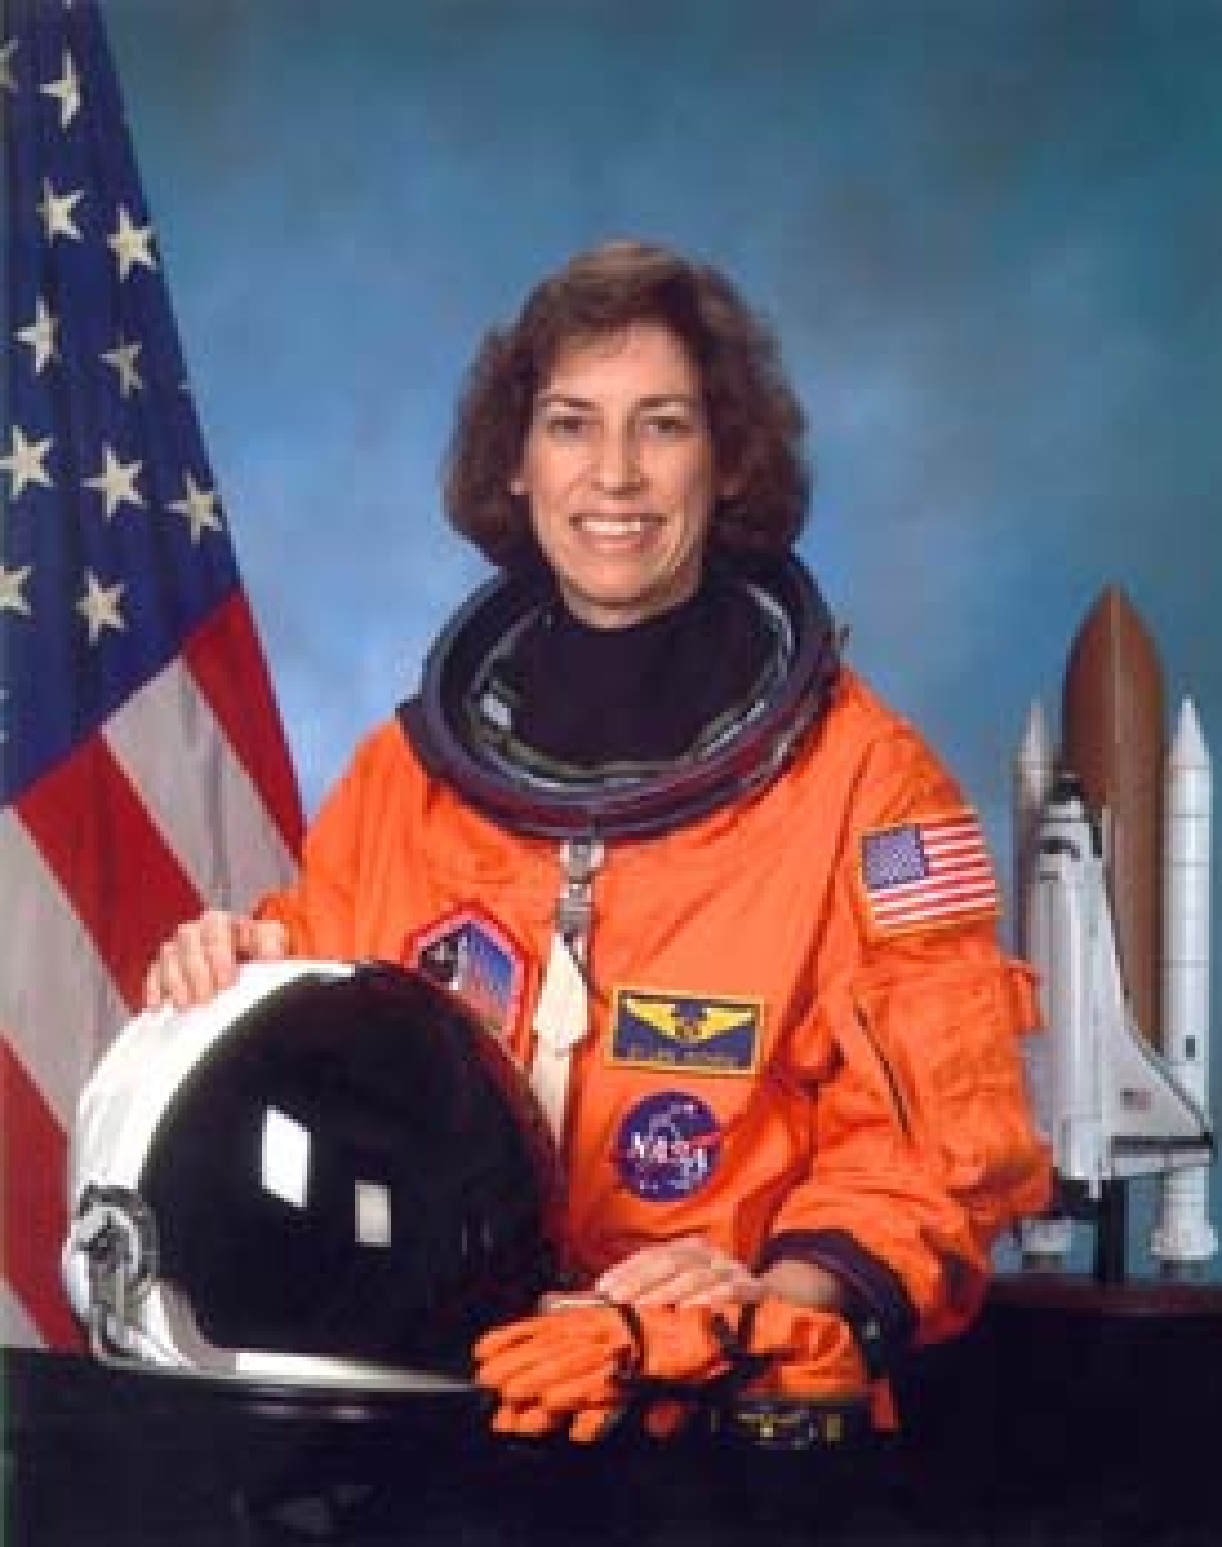 united states astronaut first - photo #35